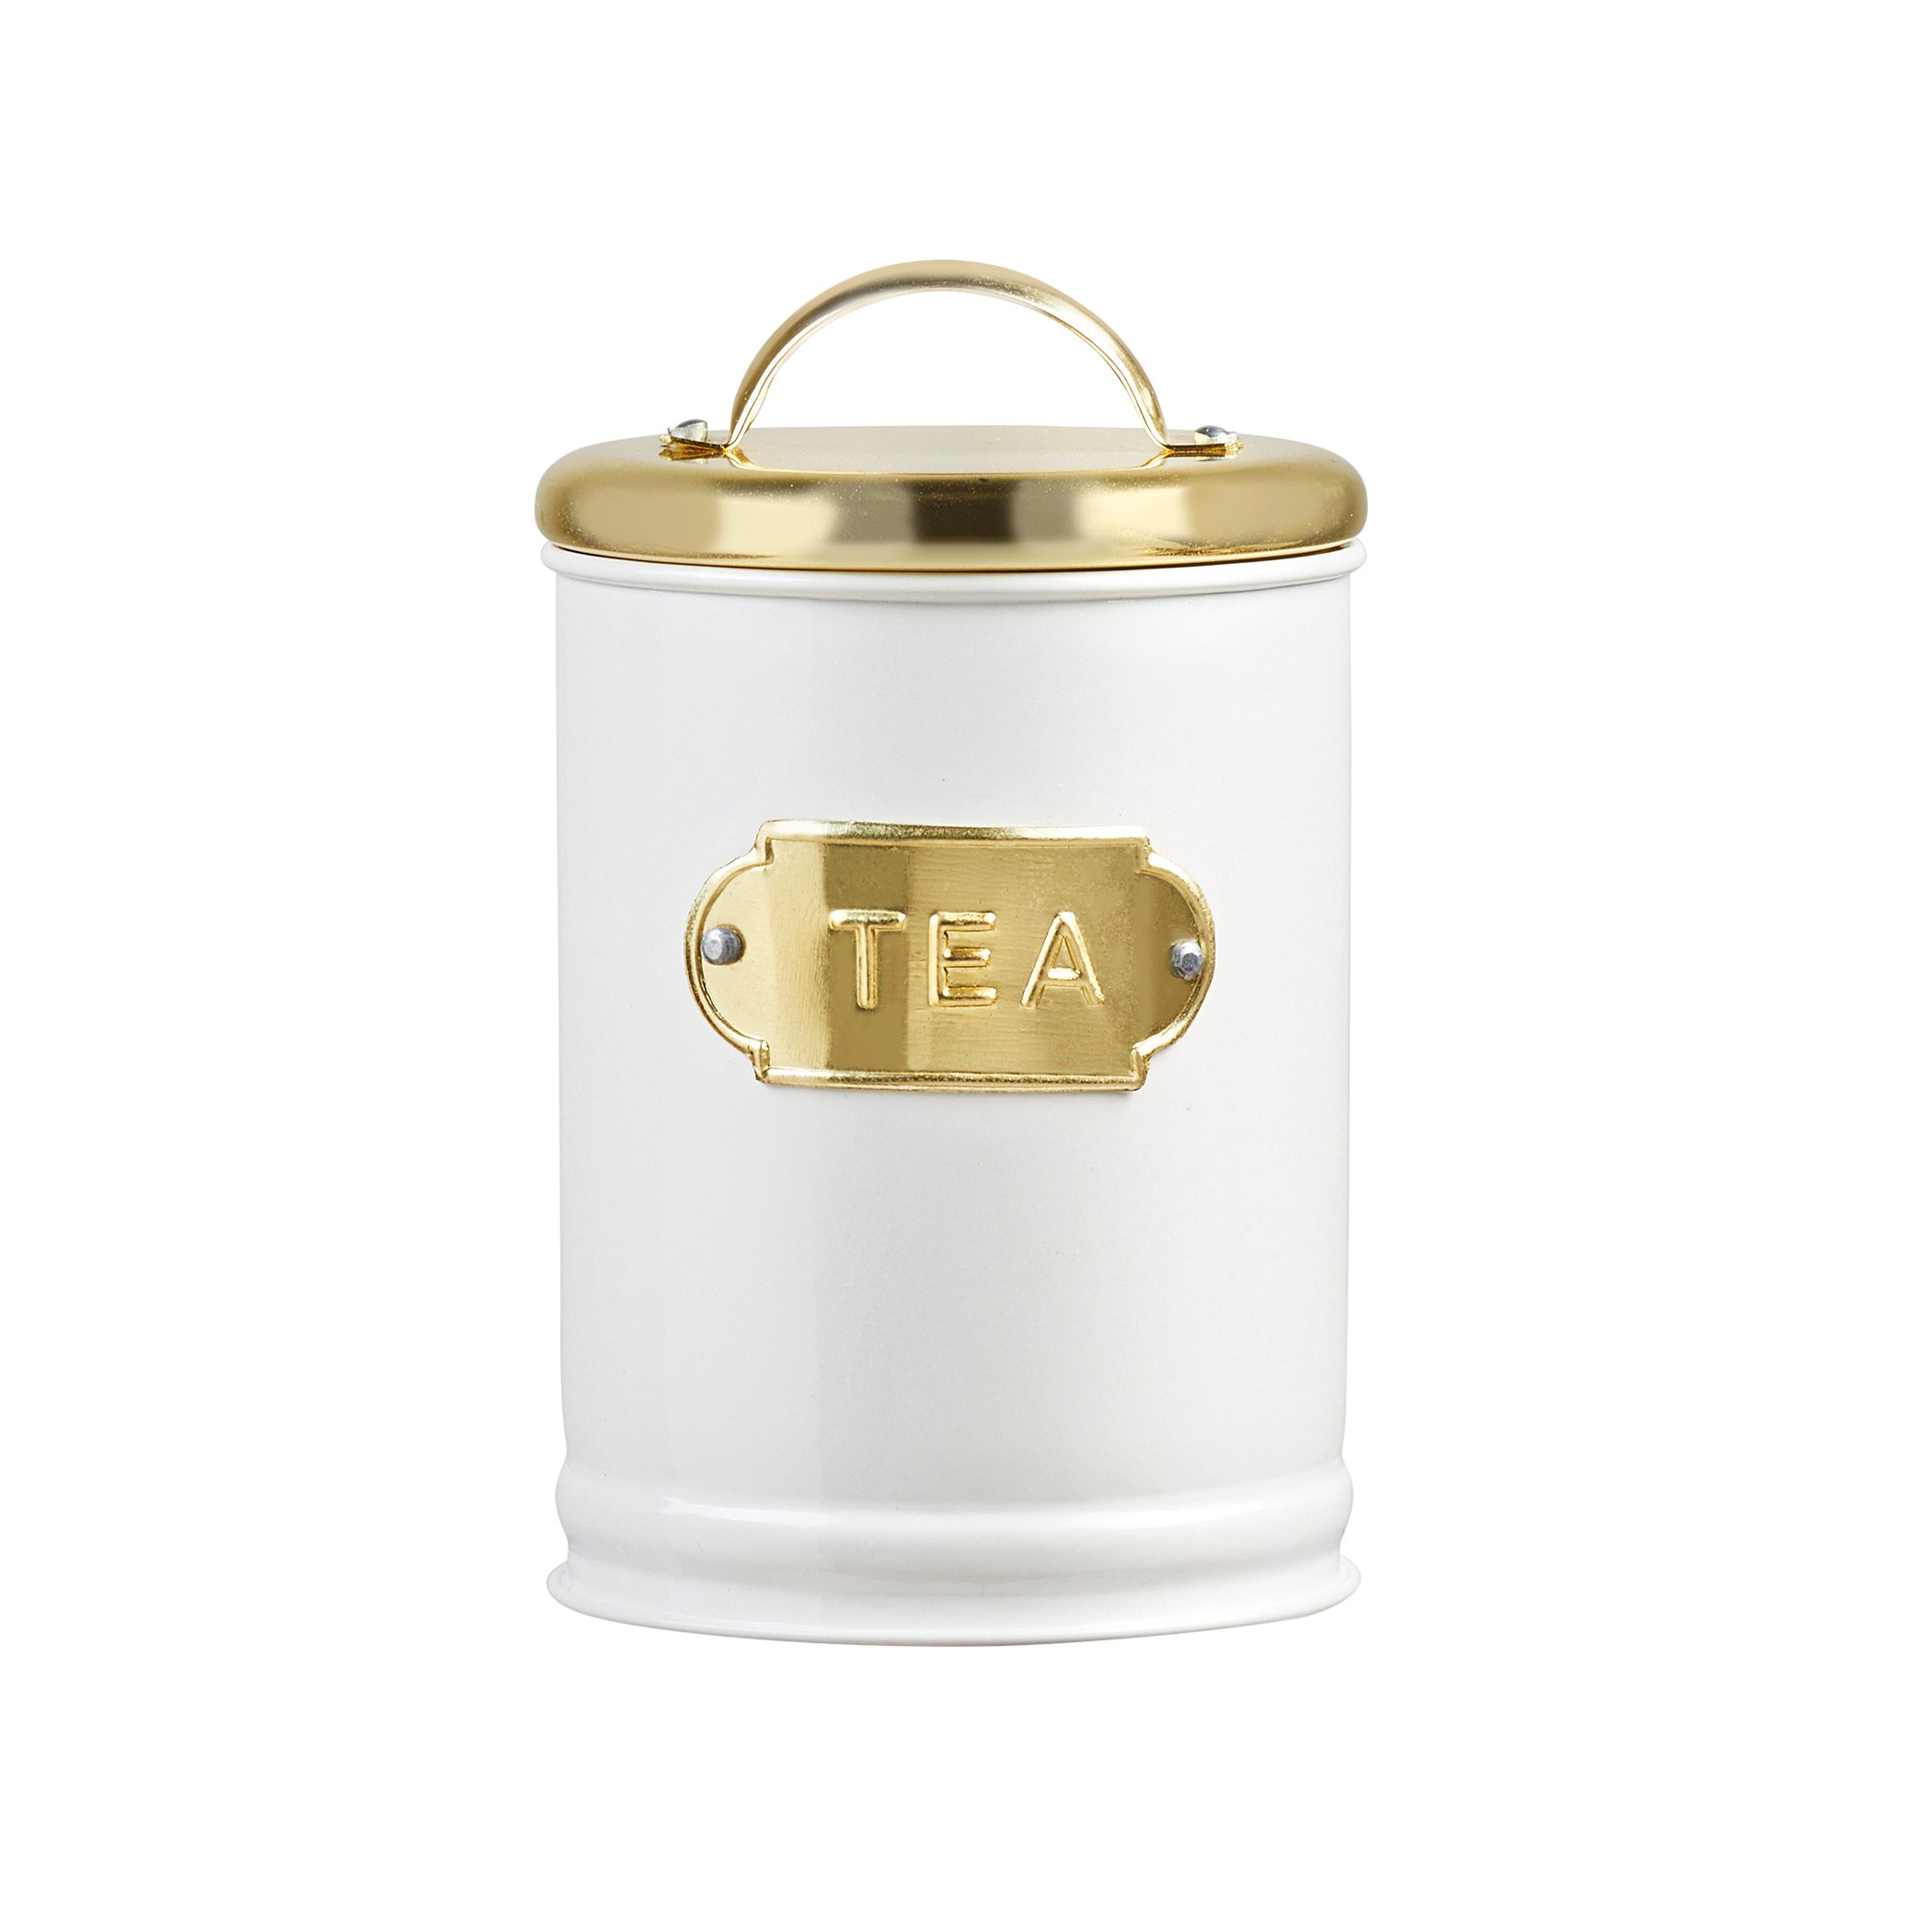 Amici A5IP003AS3R Home Madison Metal Canisters (Set of 3), Assorted/32 oz, Gold by Amici (Image #3)